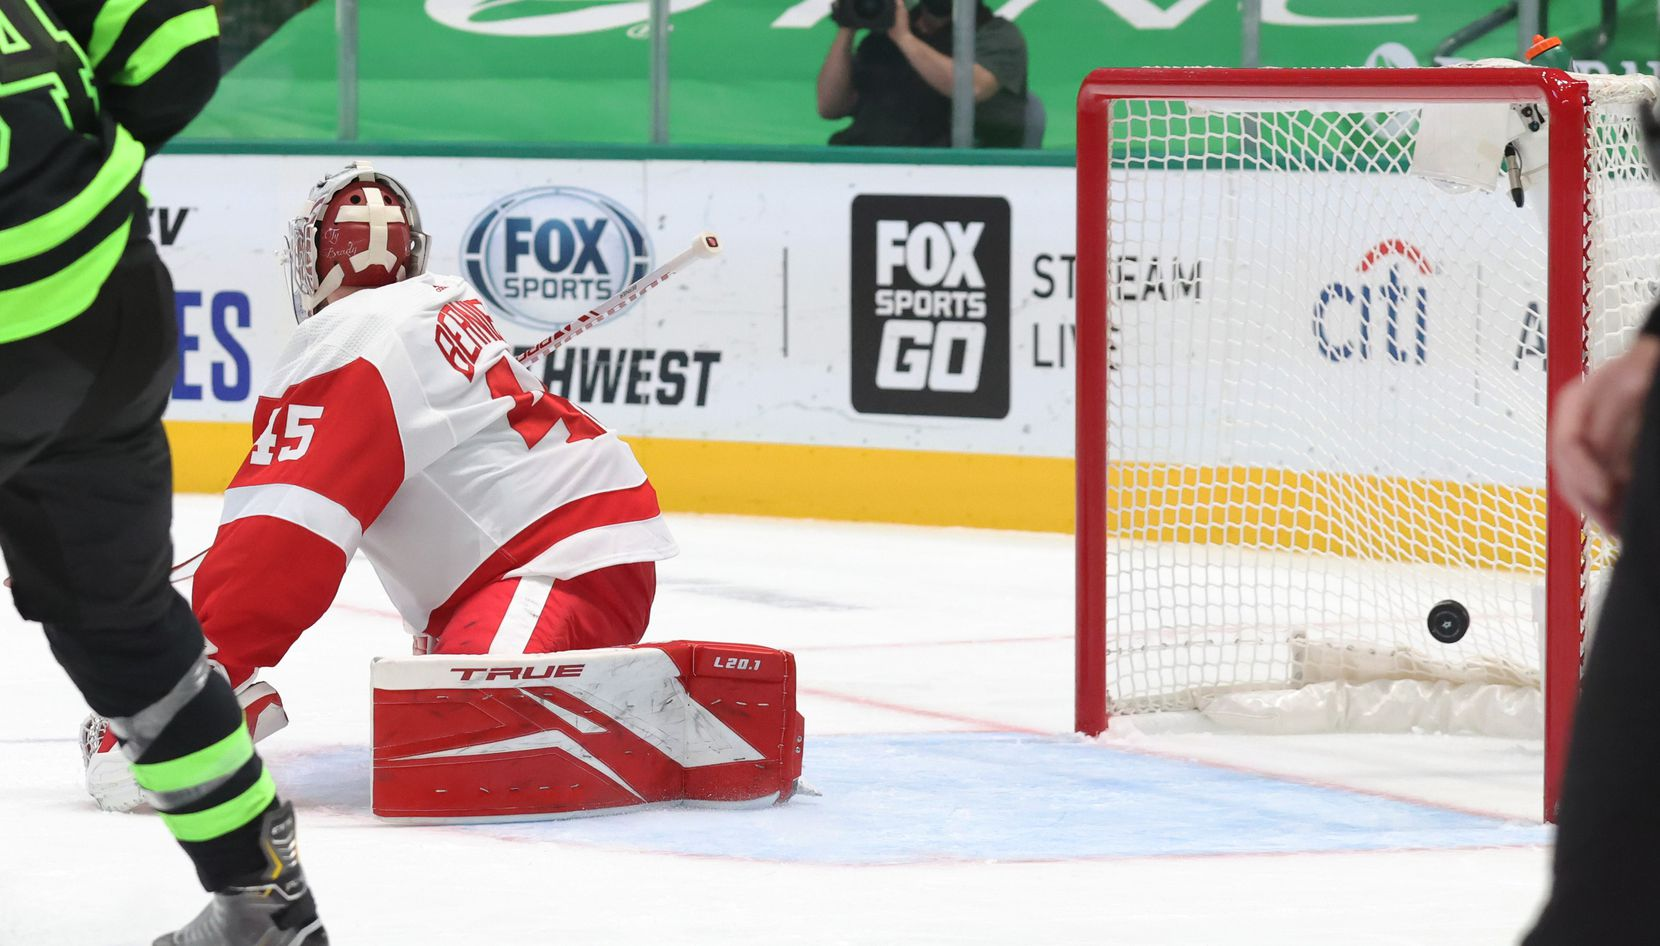 Detroit Red Wings goaltender Jonathan Bernier (45) looks back at the goal scored by Dallas Stars center Joe Pavelski (16) during the first period of play at American Airlines Center on Thursday, January 28, 2021in Dallas. (Vernon Bryant/The Dallas Morning News)